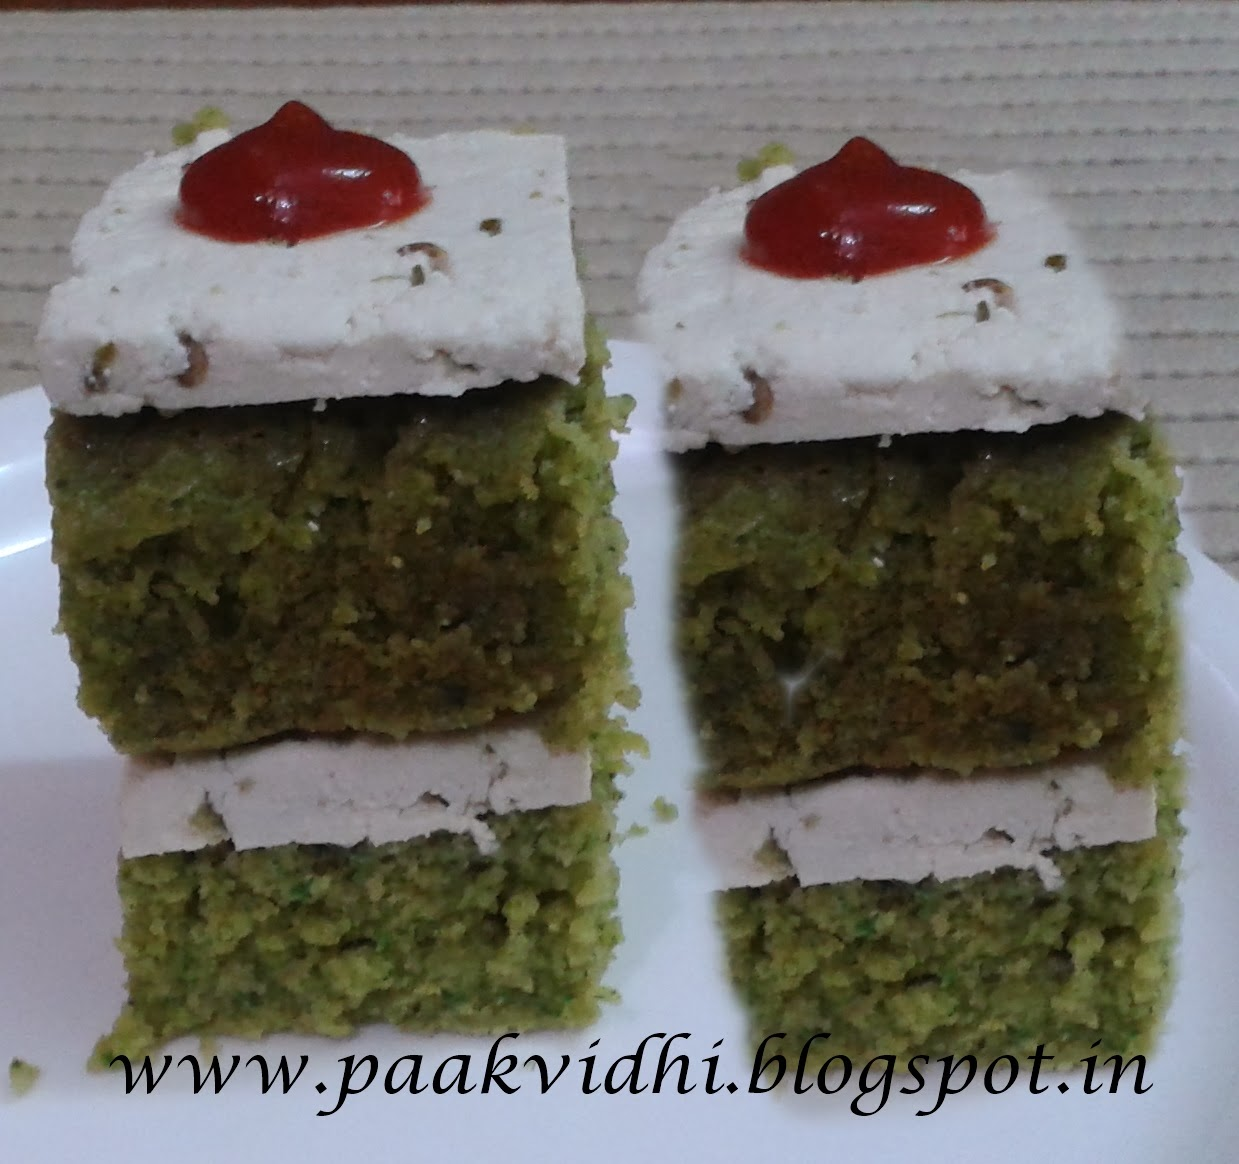 http://paakvidhi.blogspot.in/2014/01/ingredients-1-cup-besan-gram-flour-1.html